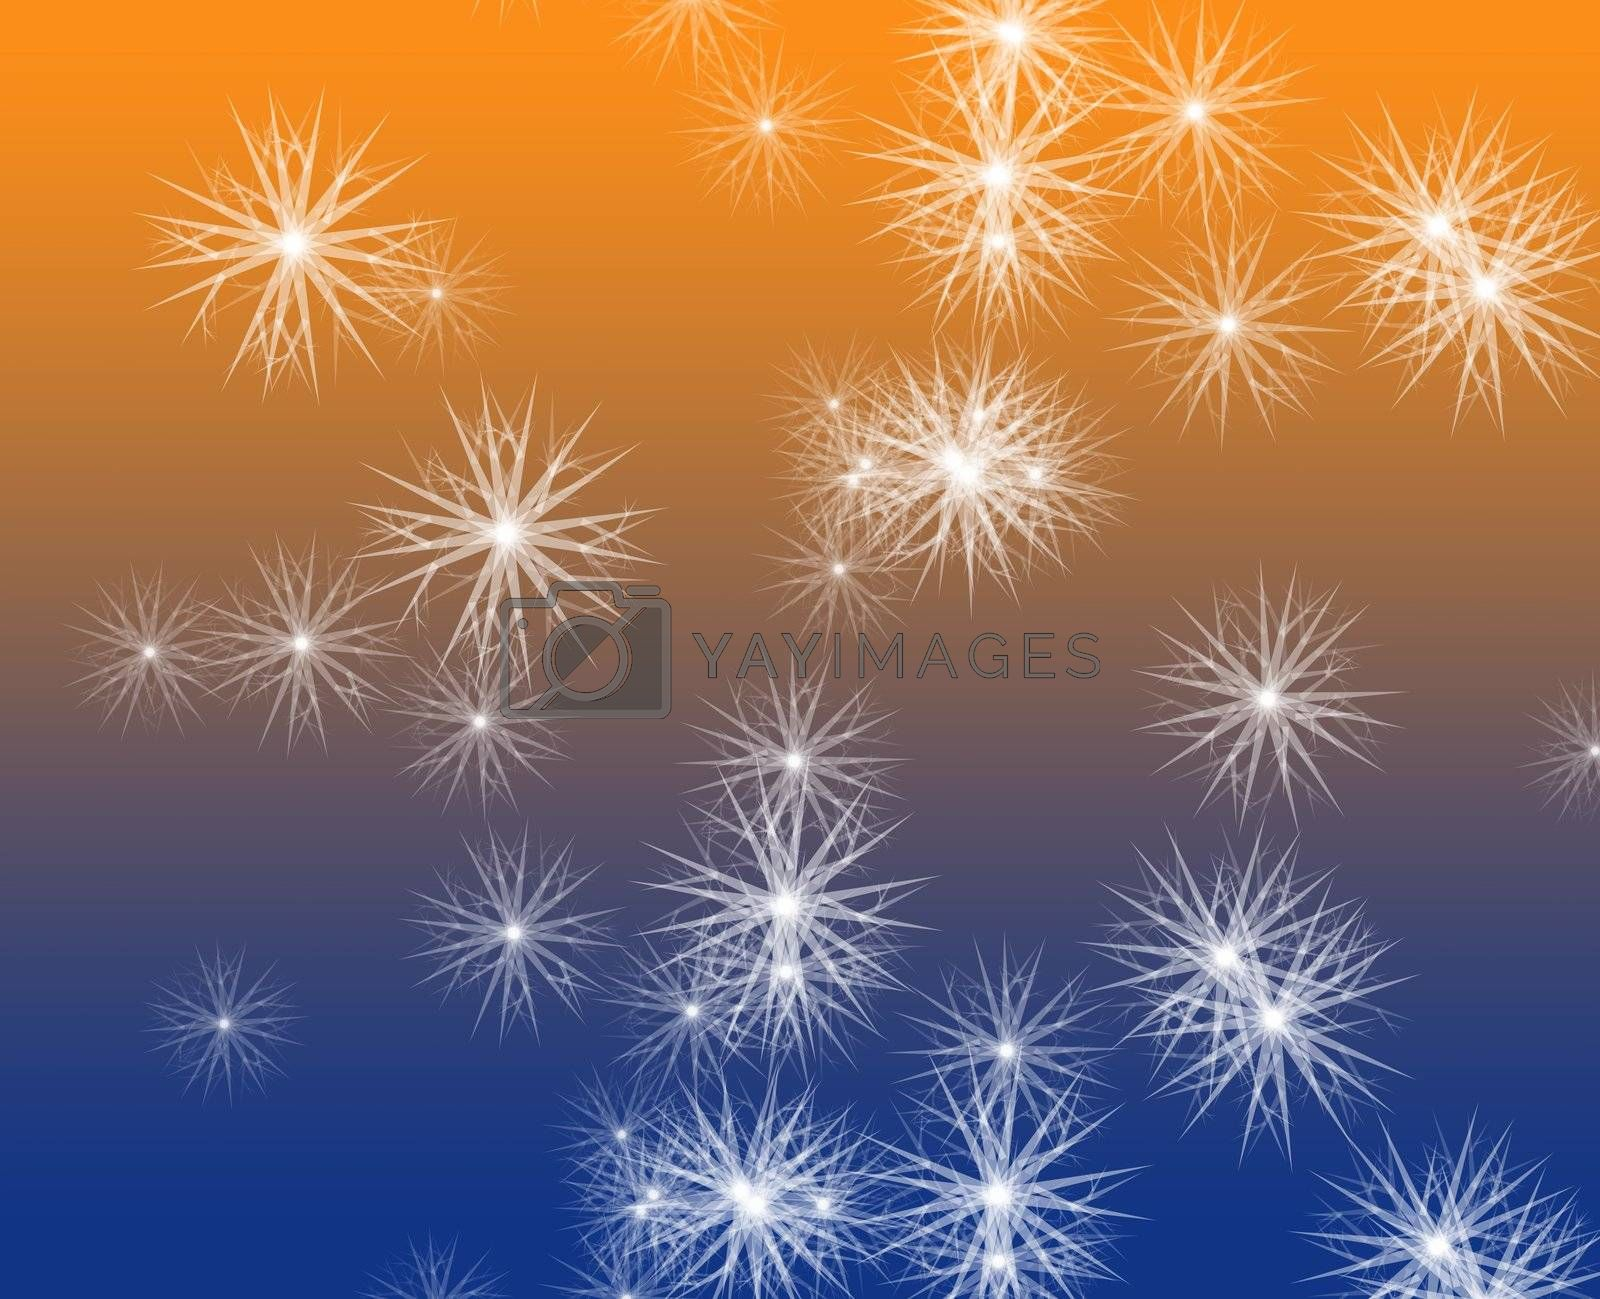 Falling snow, detailed crystalline snowflakes abstract background